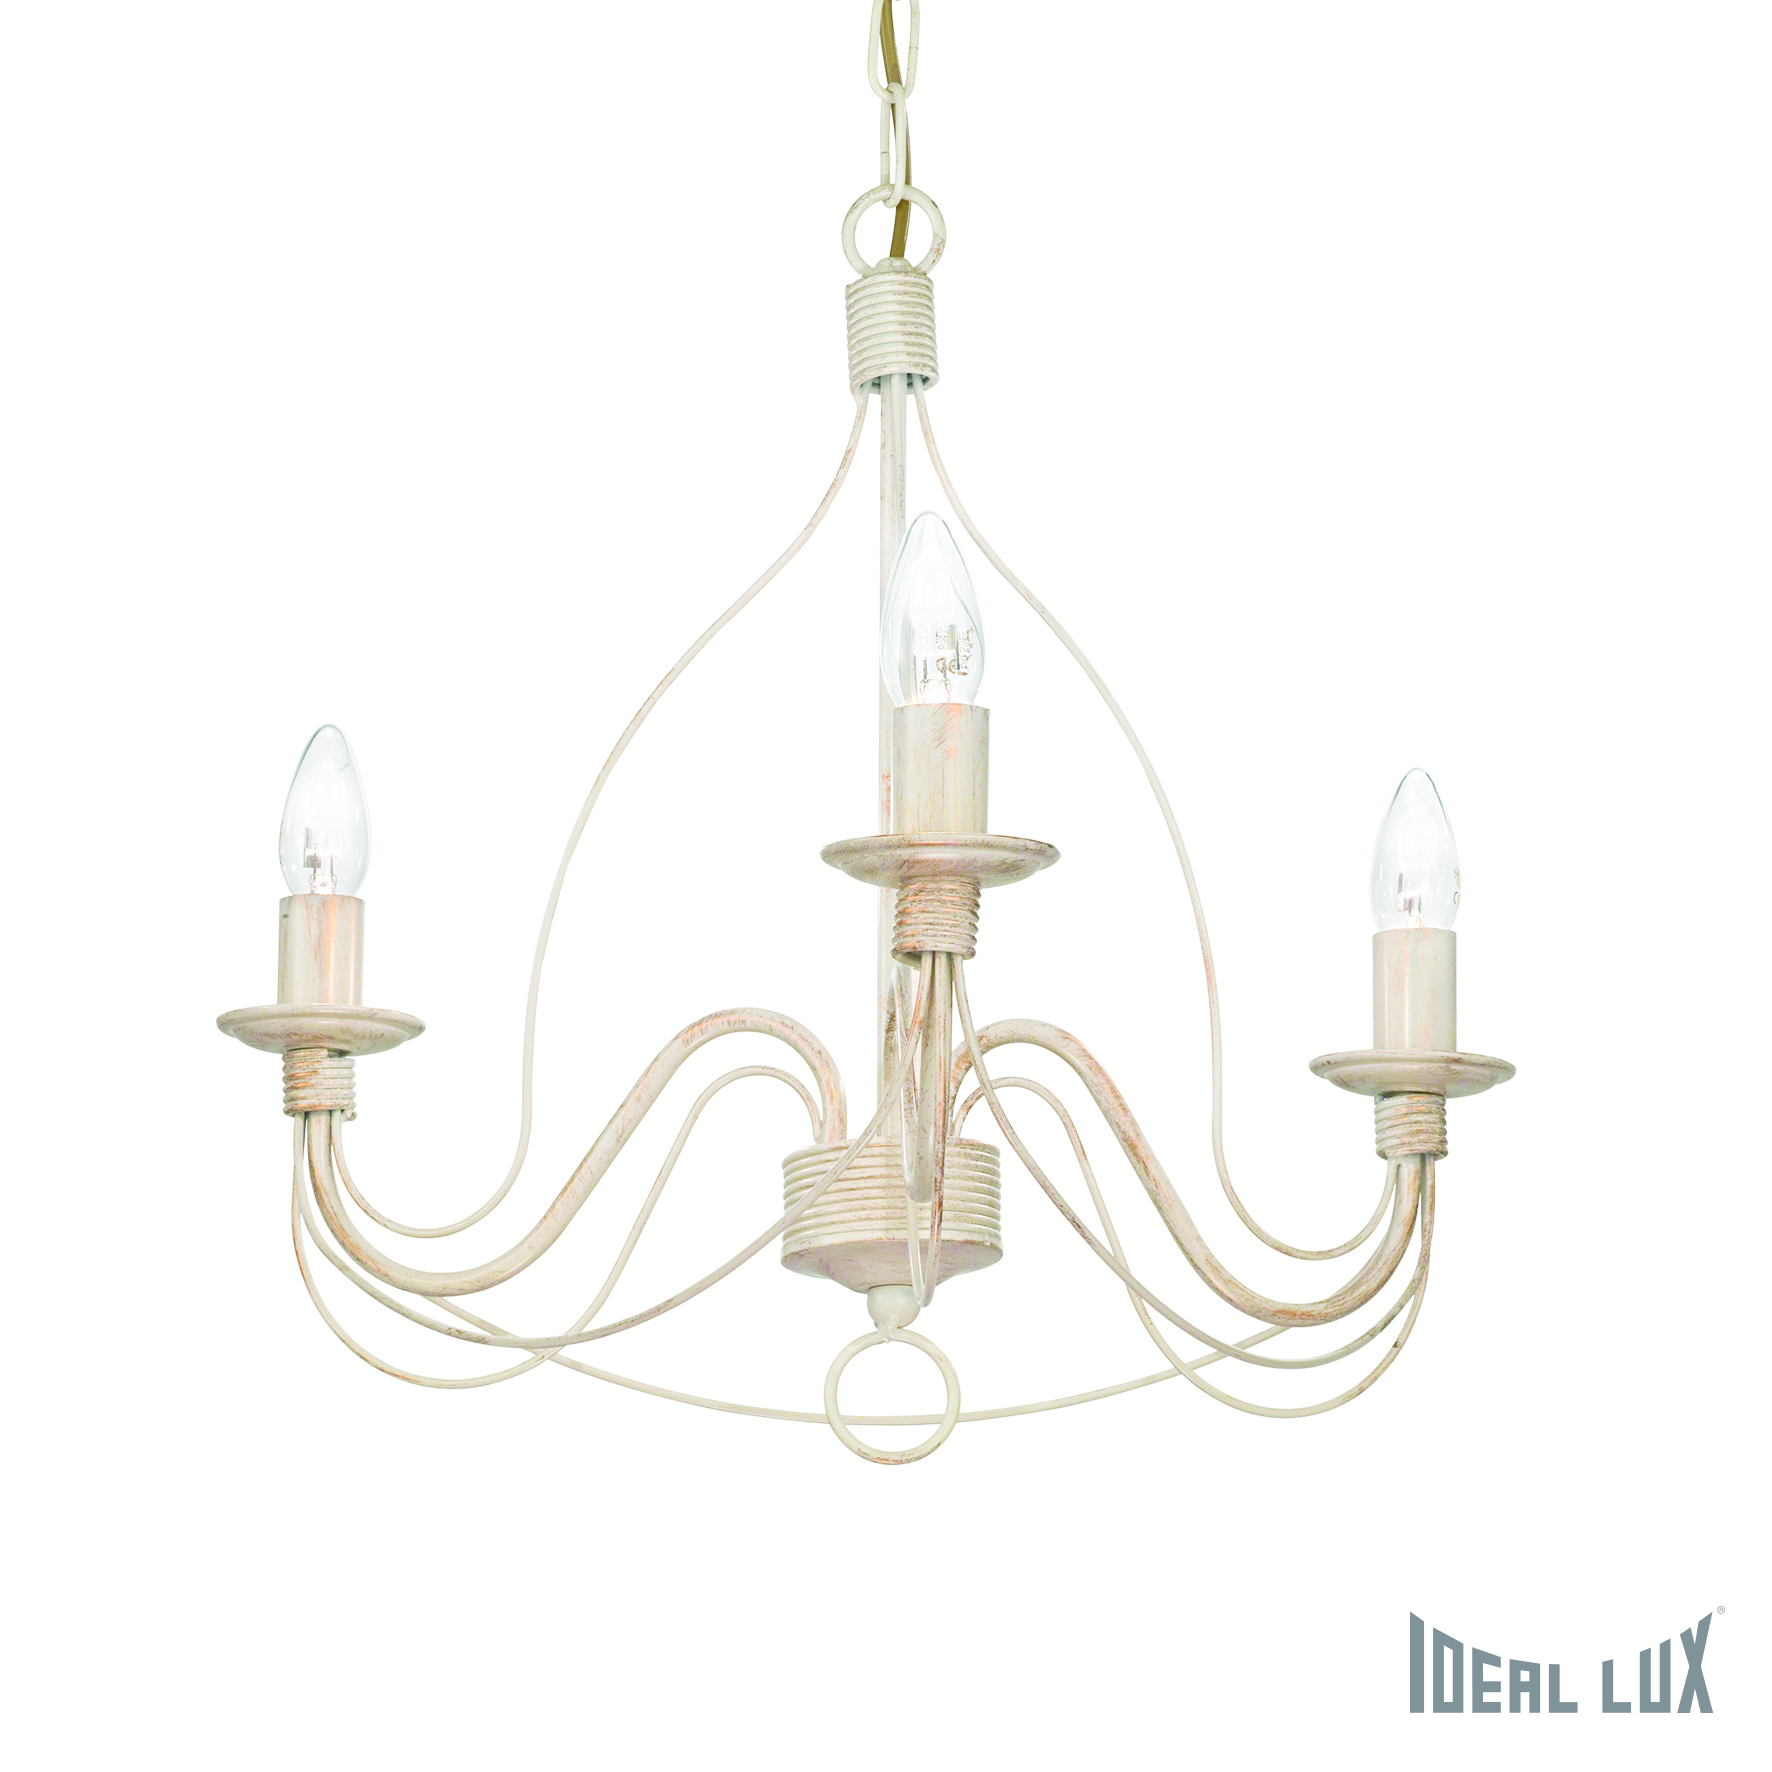 Подвесная люстра Ideal Lux Corte CORTE SP3 BIANCO ANTICO ideal lux люстра ideal lux queen sp3